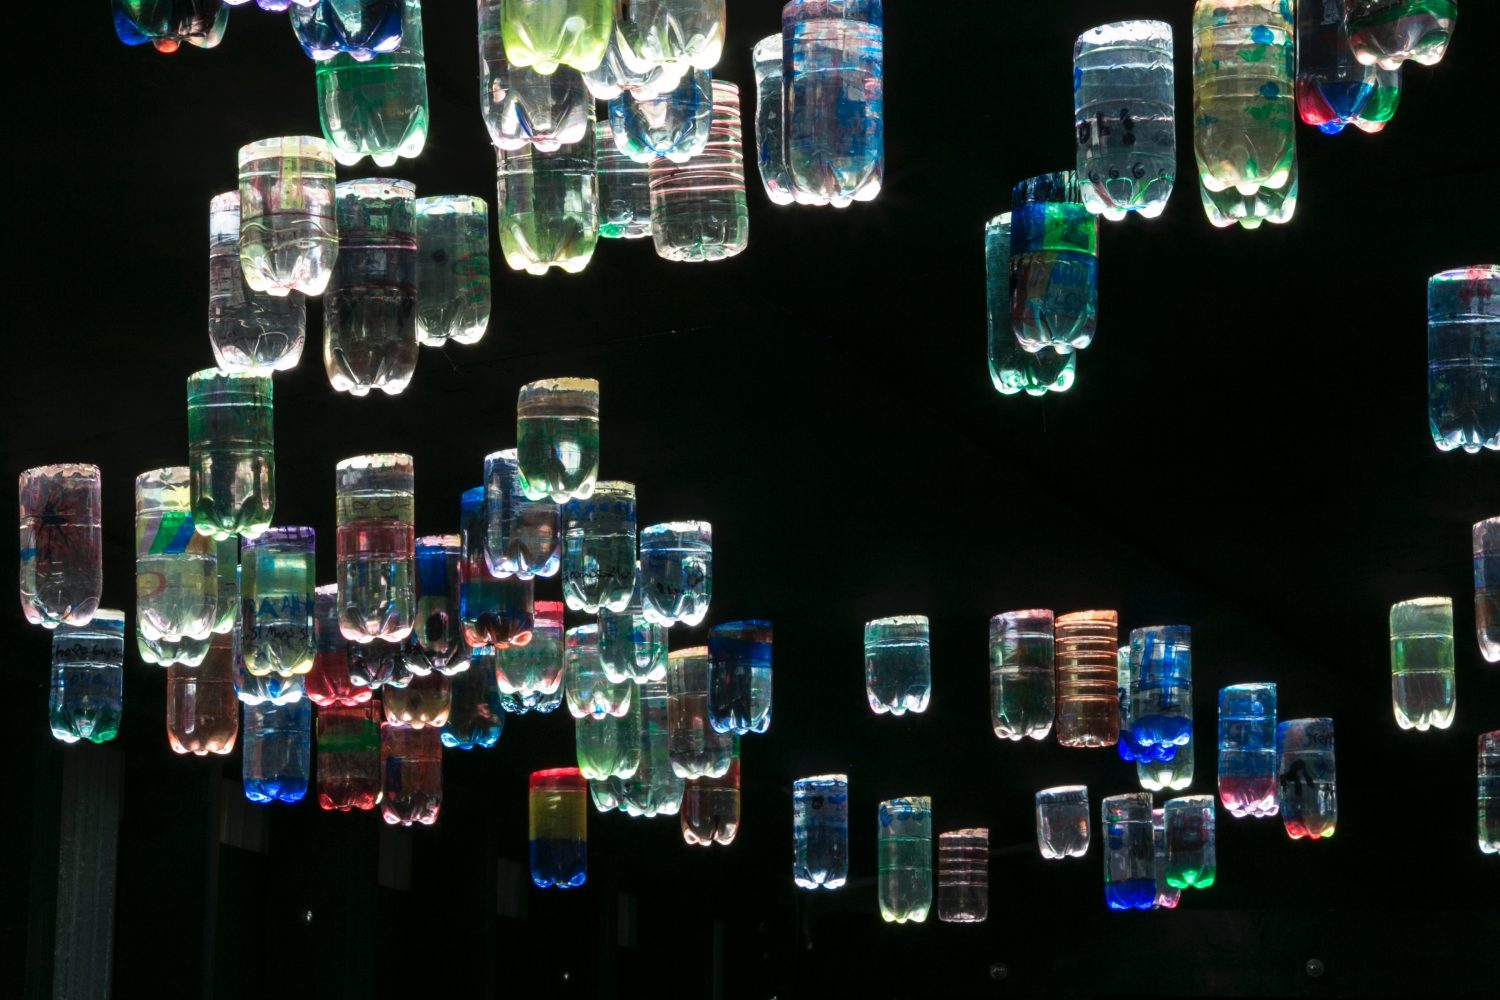 Bottles of water reflecting light with a rainbox